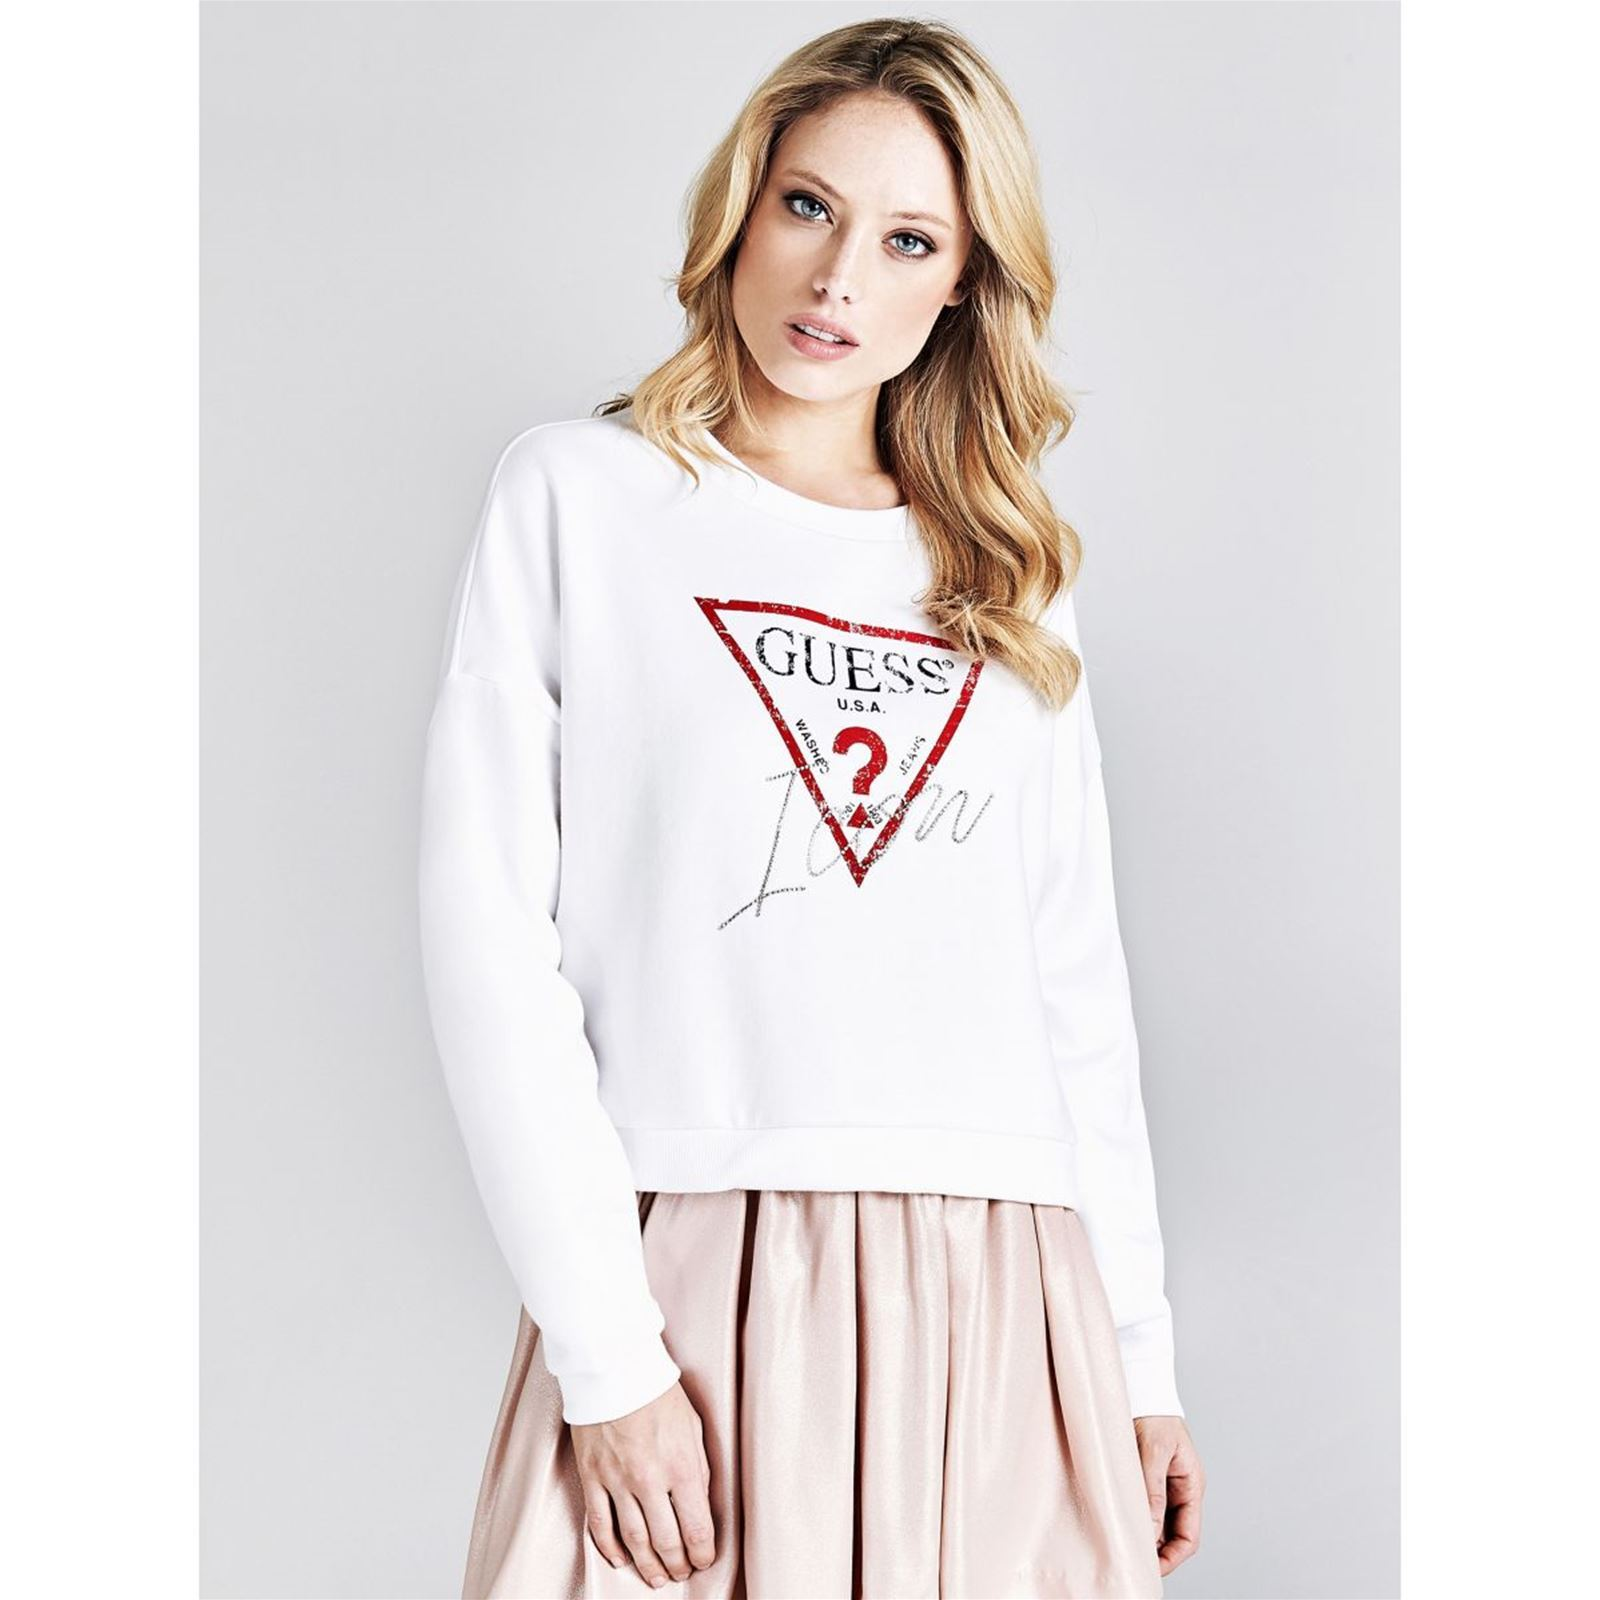 V Sweat Femme LogoBlanc Femme Guess Guess Sweat Sweat Guess LogoBlanc V LogoBlanc N0OX8nwkZP